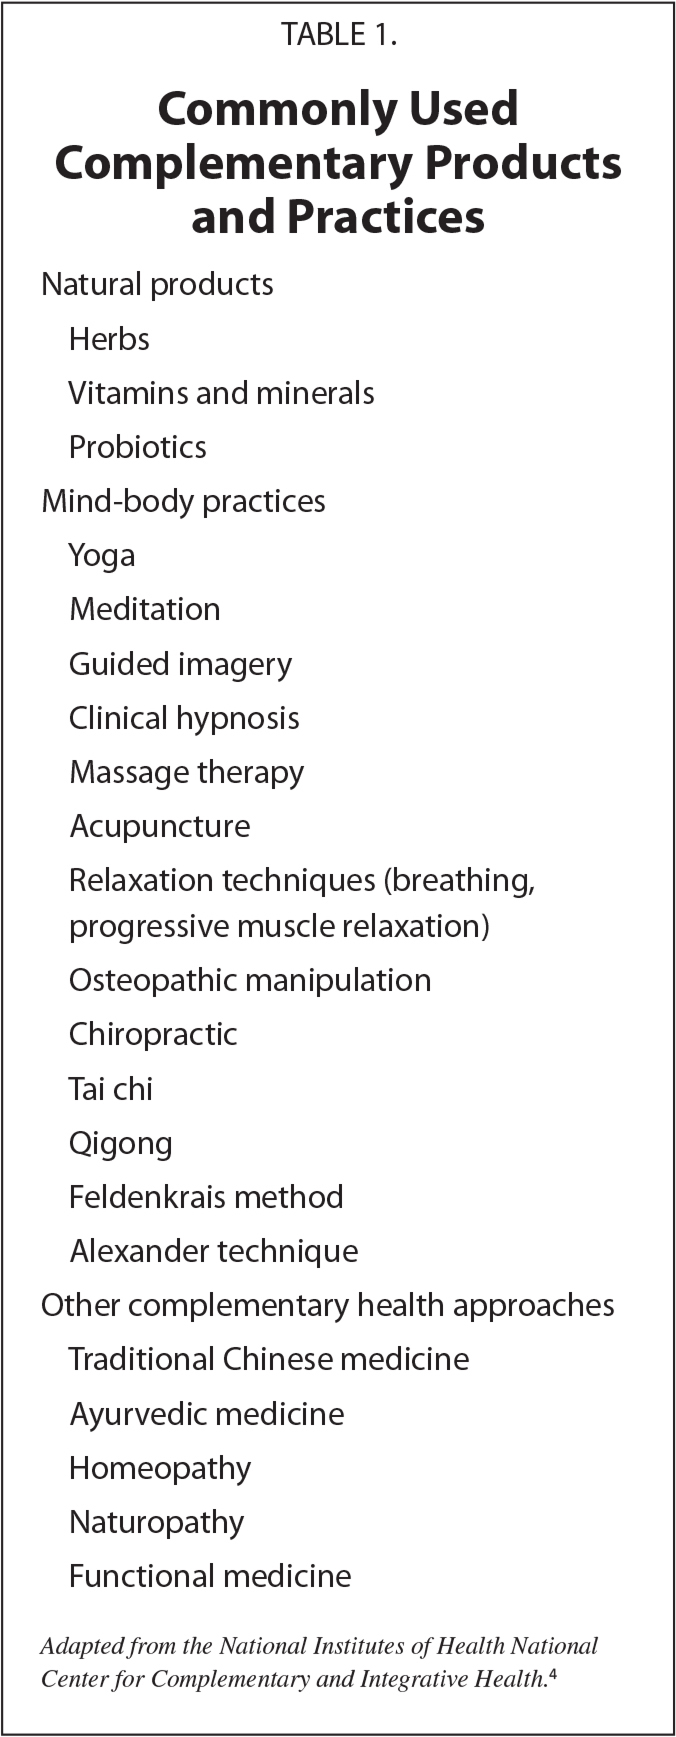 Commonly Used Complementary Products and Practices